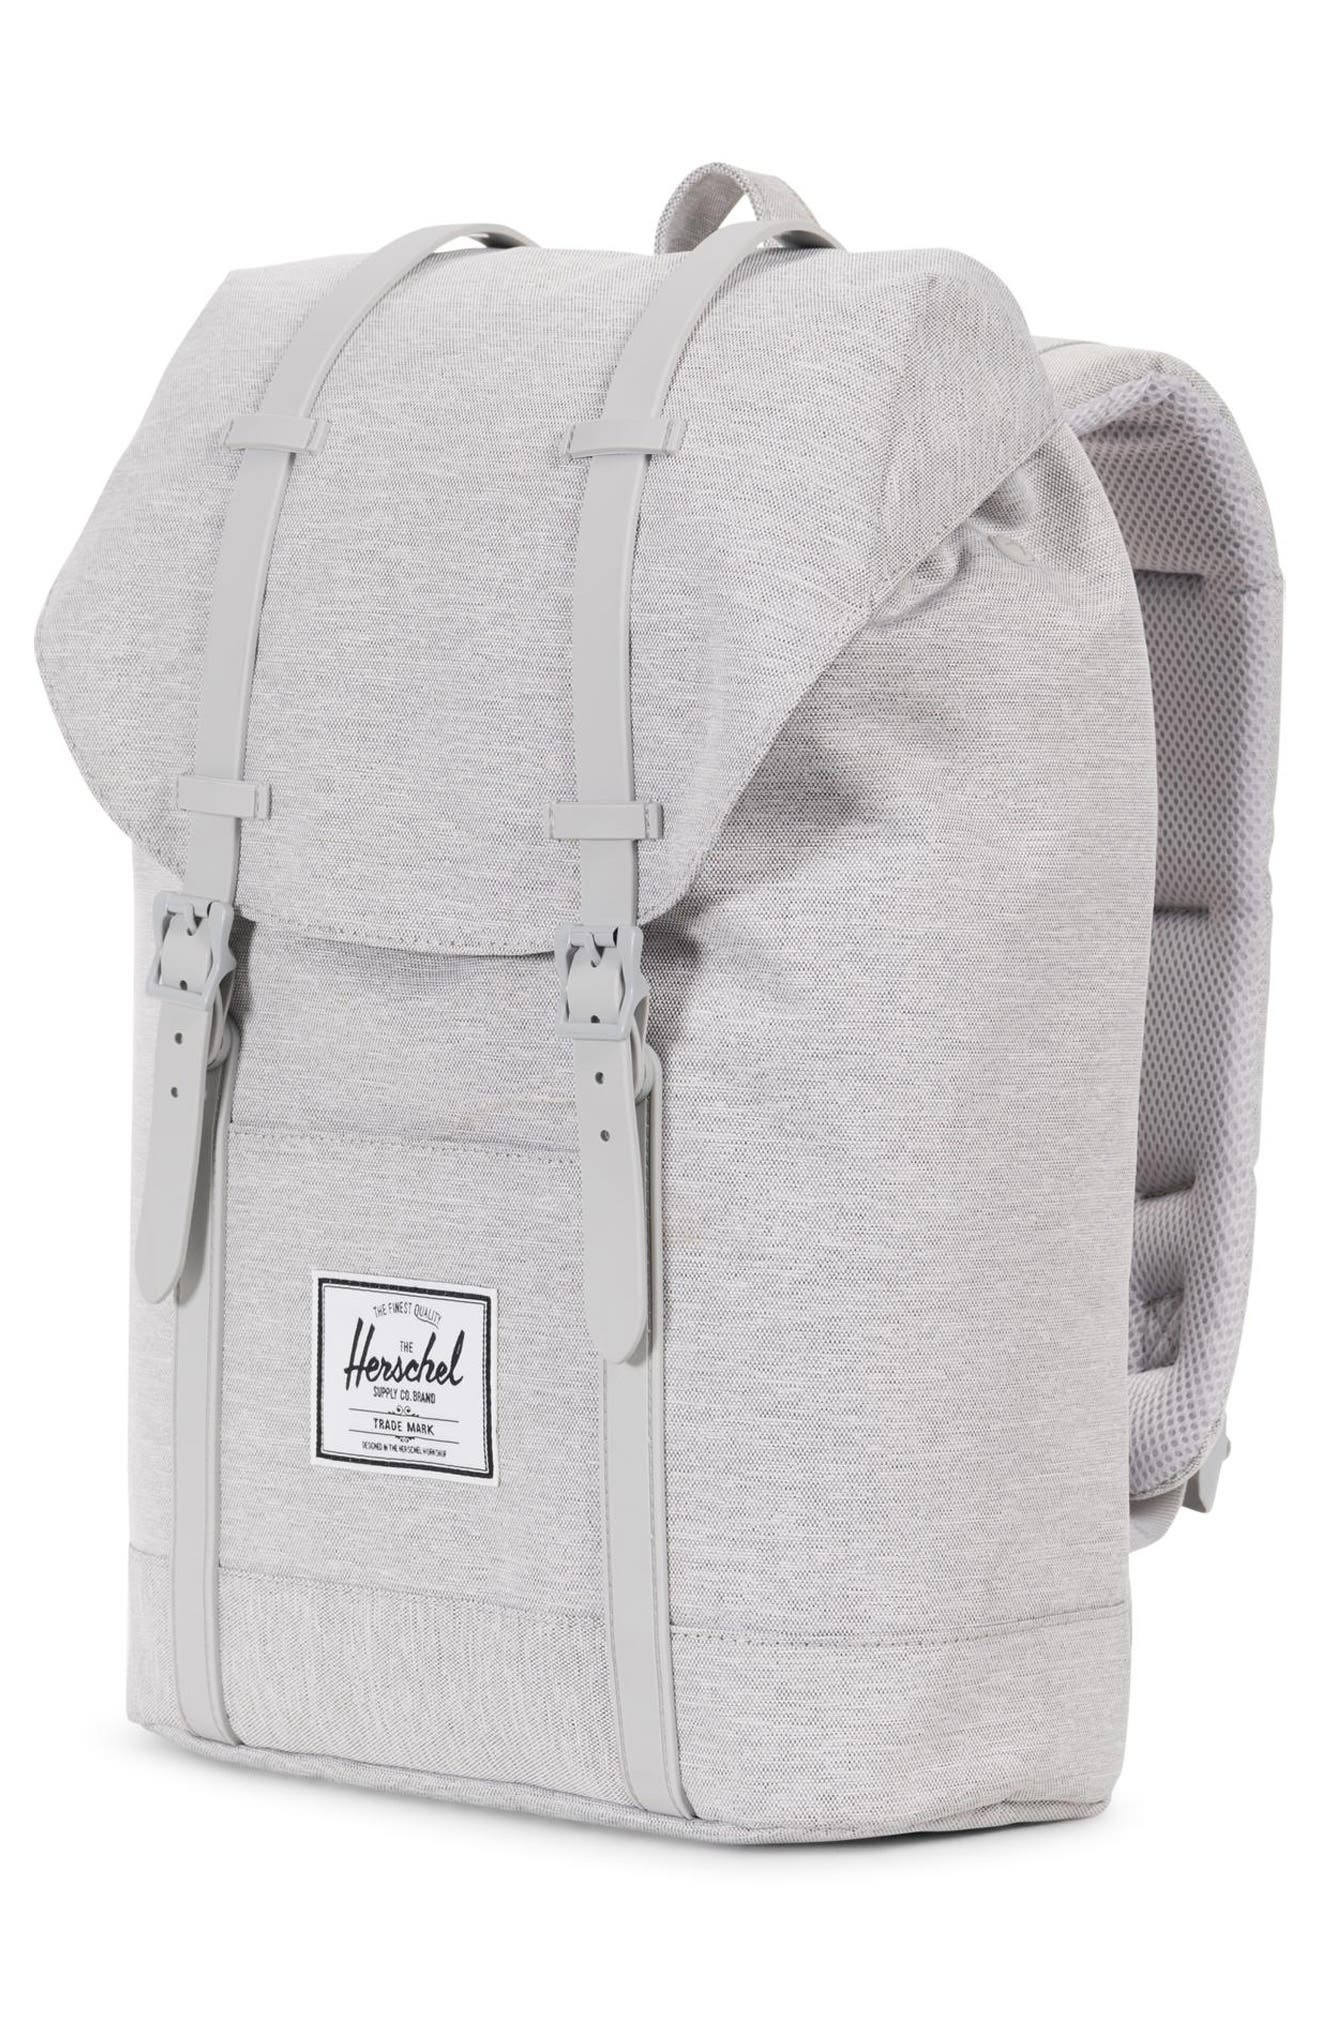 Retreat Backpack,                             Alternate thumbnail 4, color,                             LIGHT GREY CROSSHATCH/ GREY